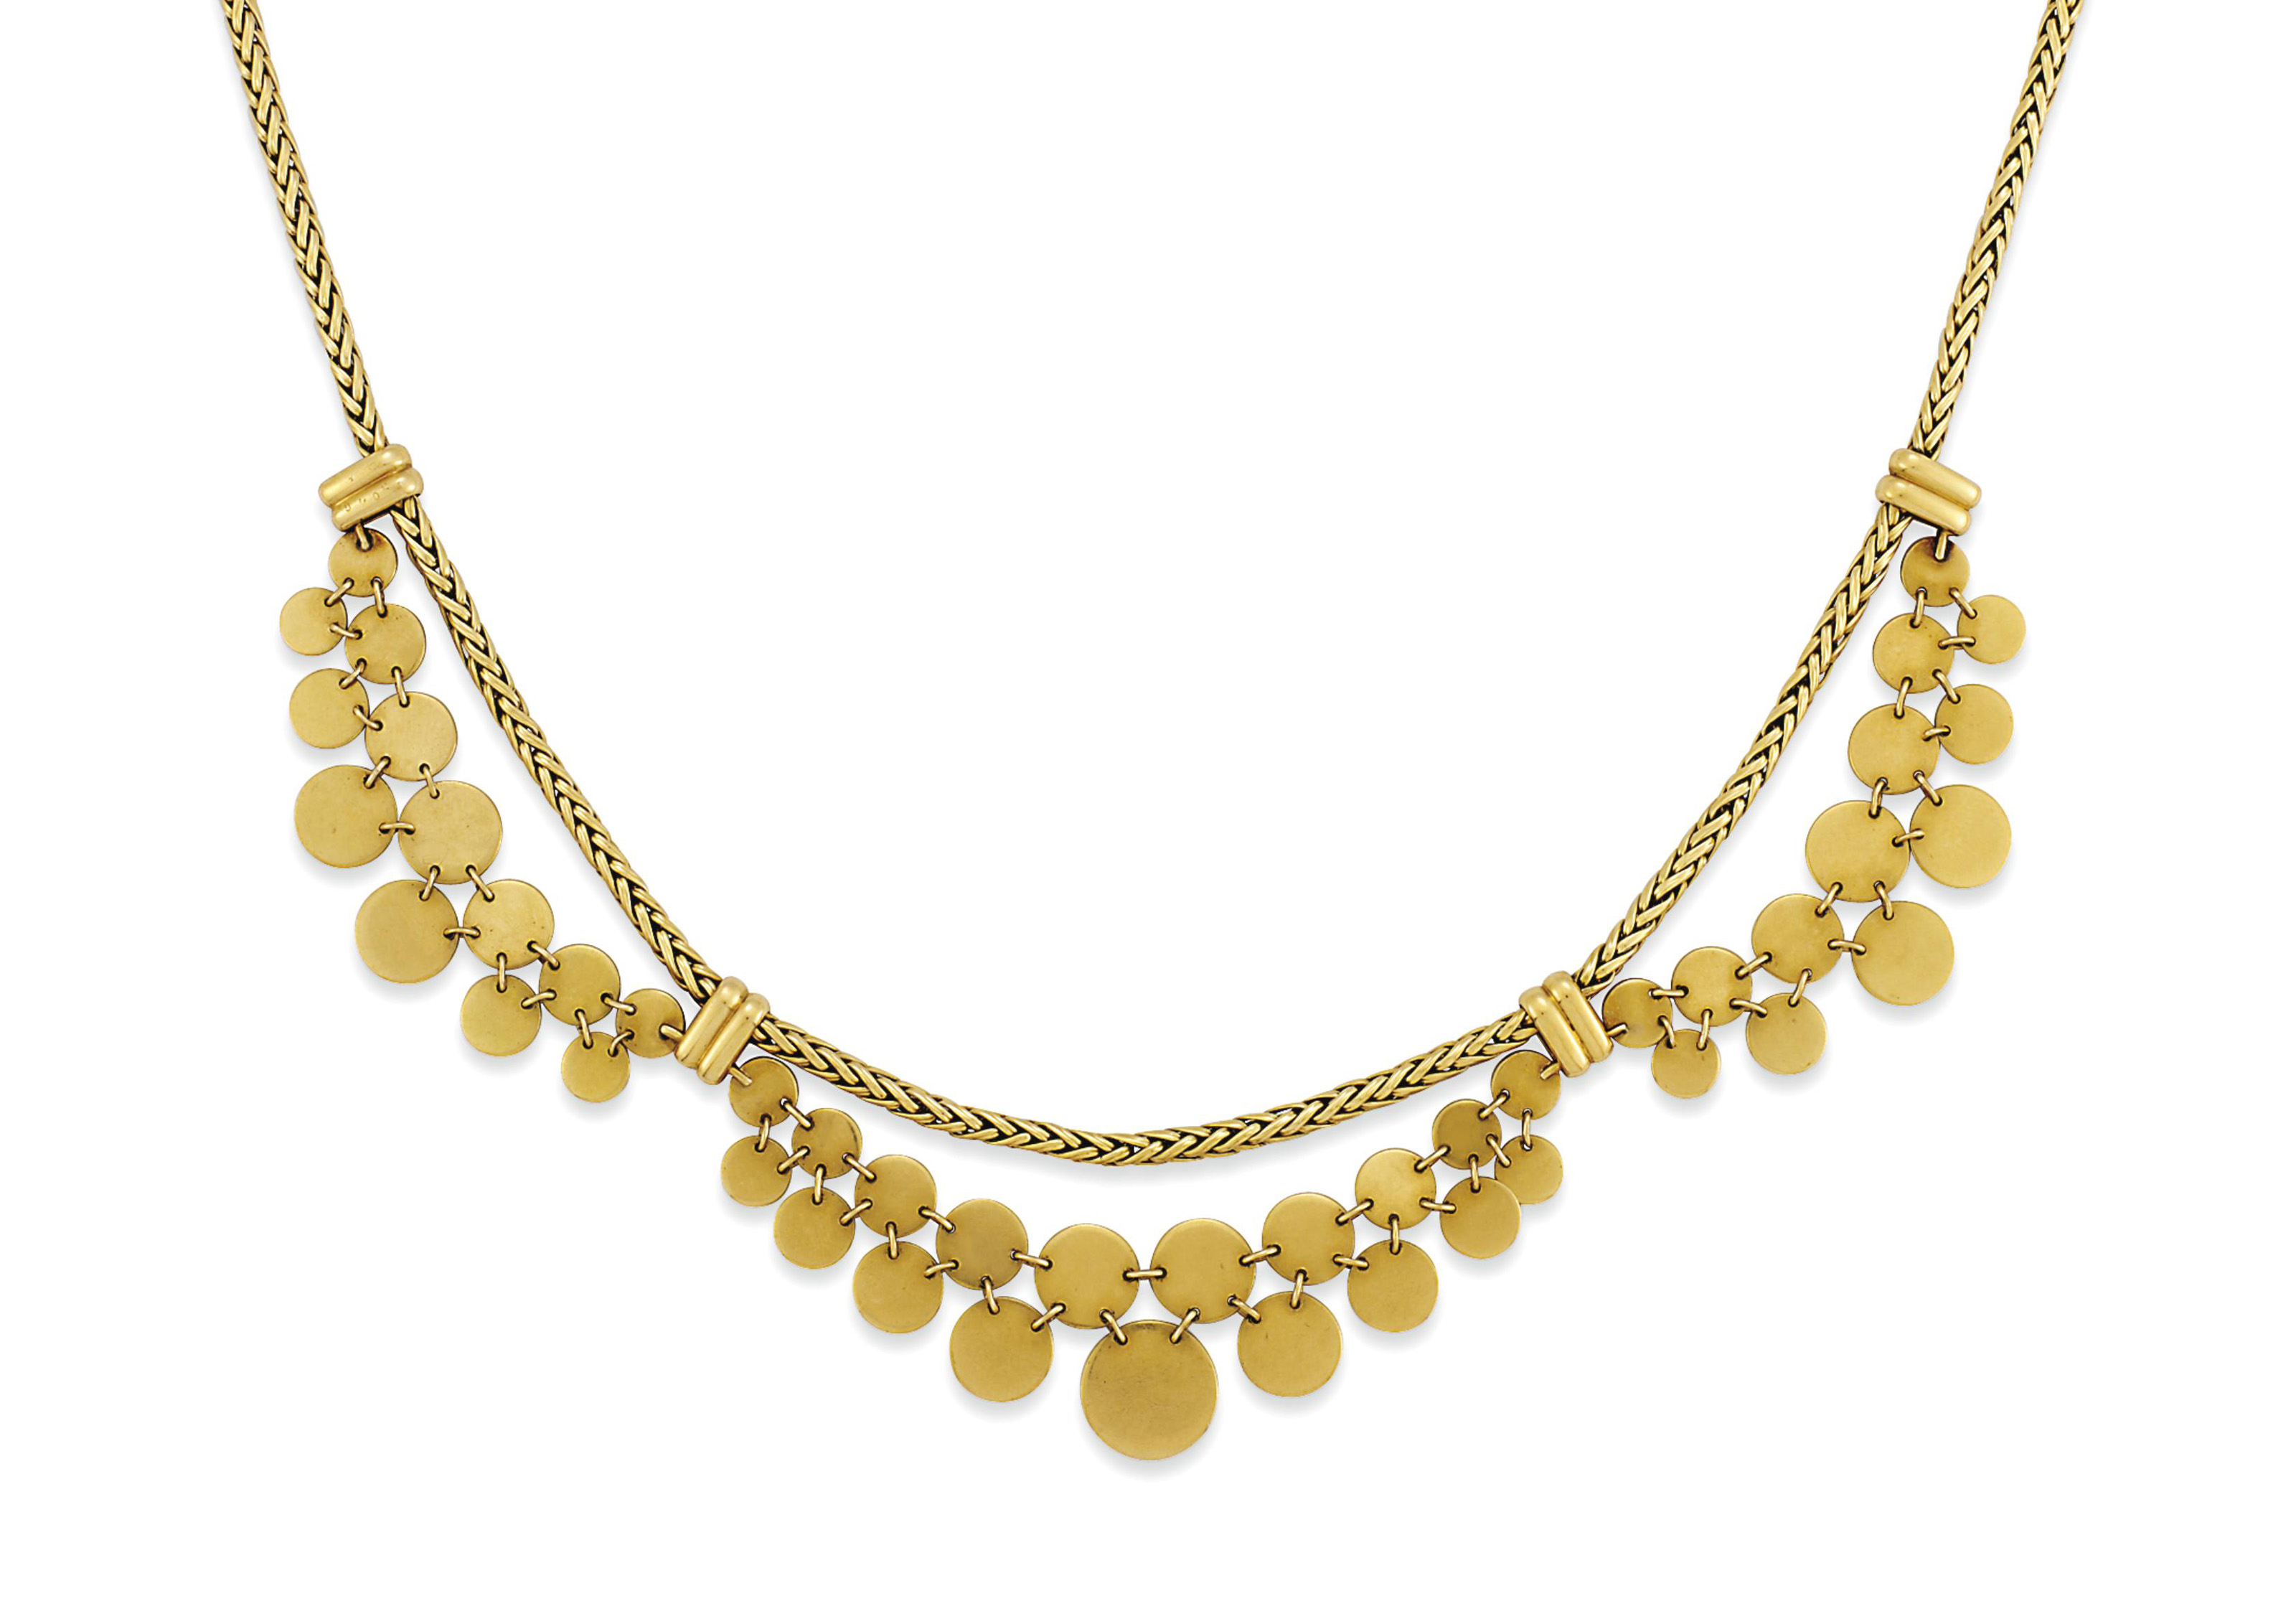 A FANCY-LINK NECKLACE, BY CARTIER